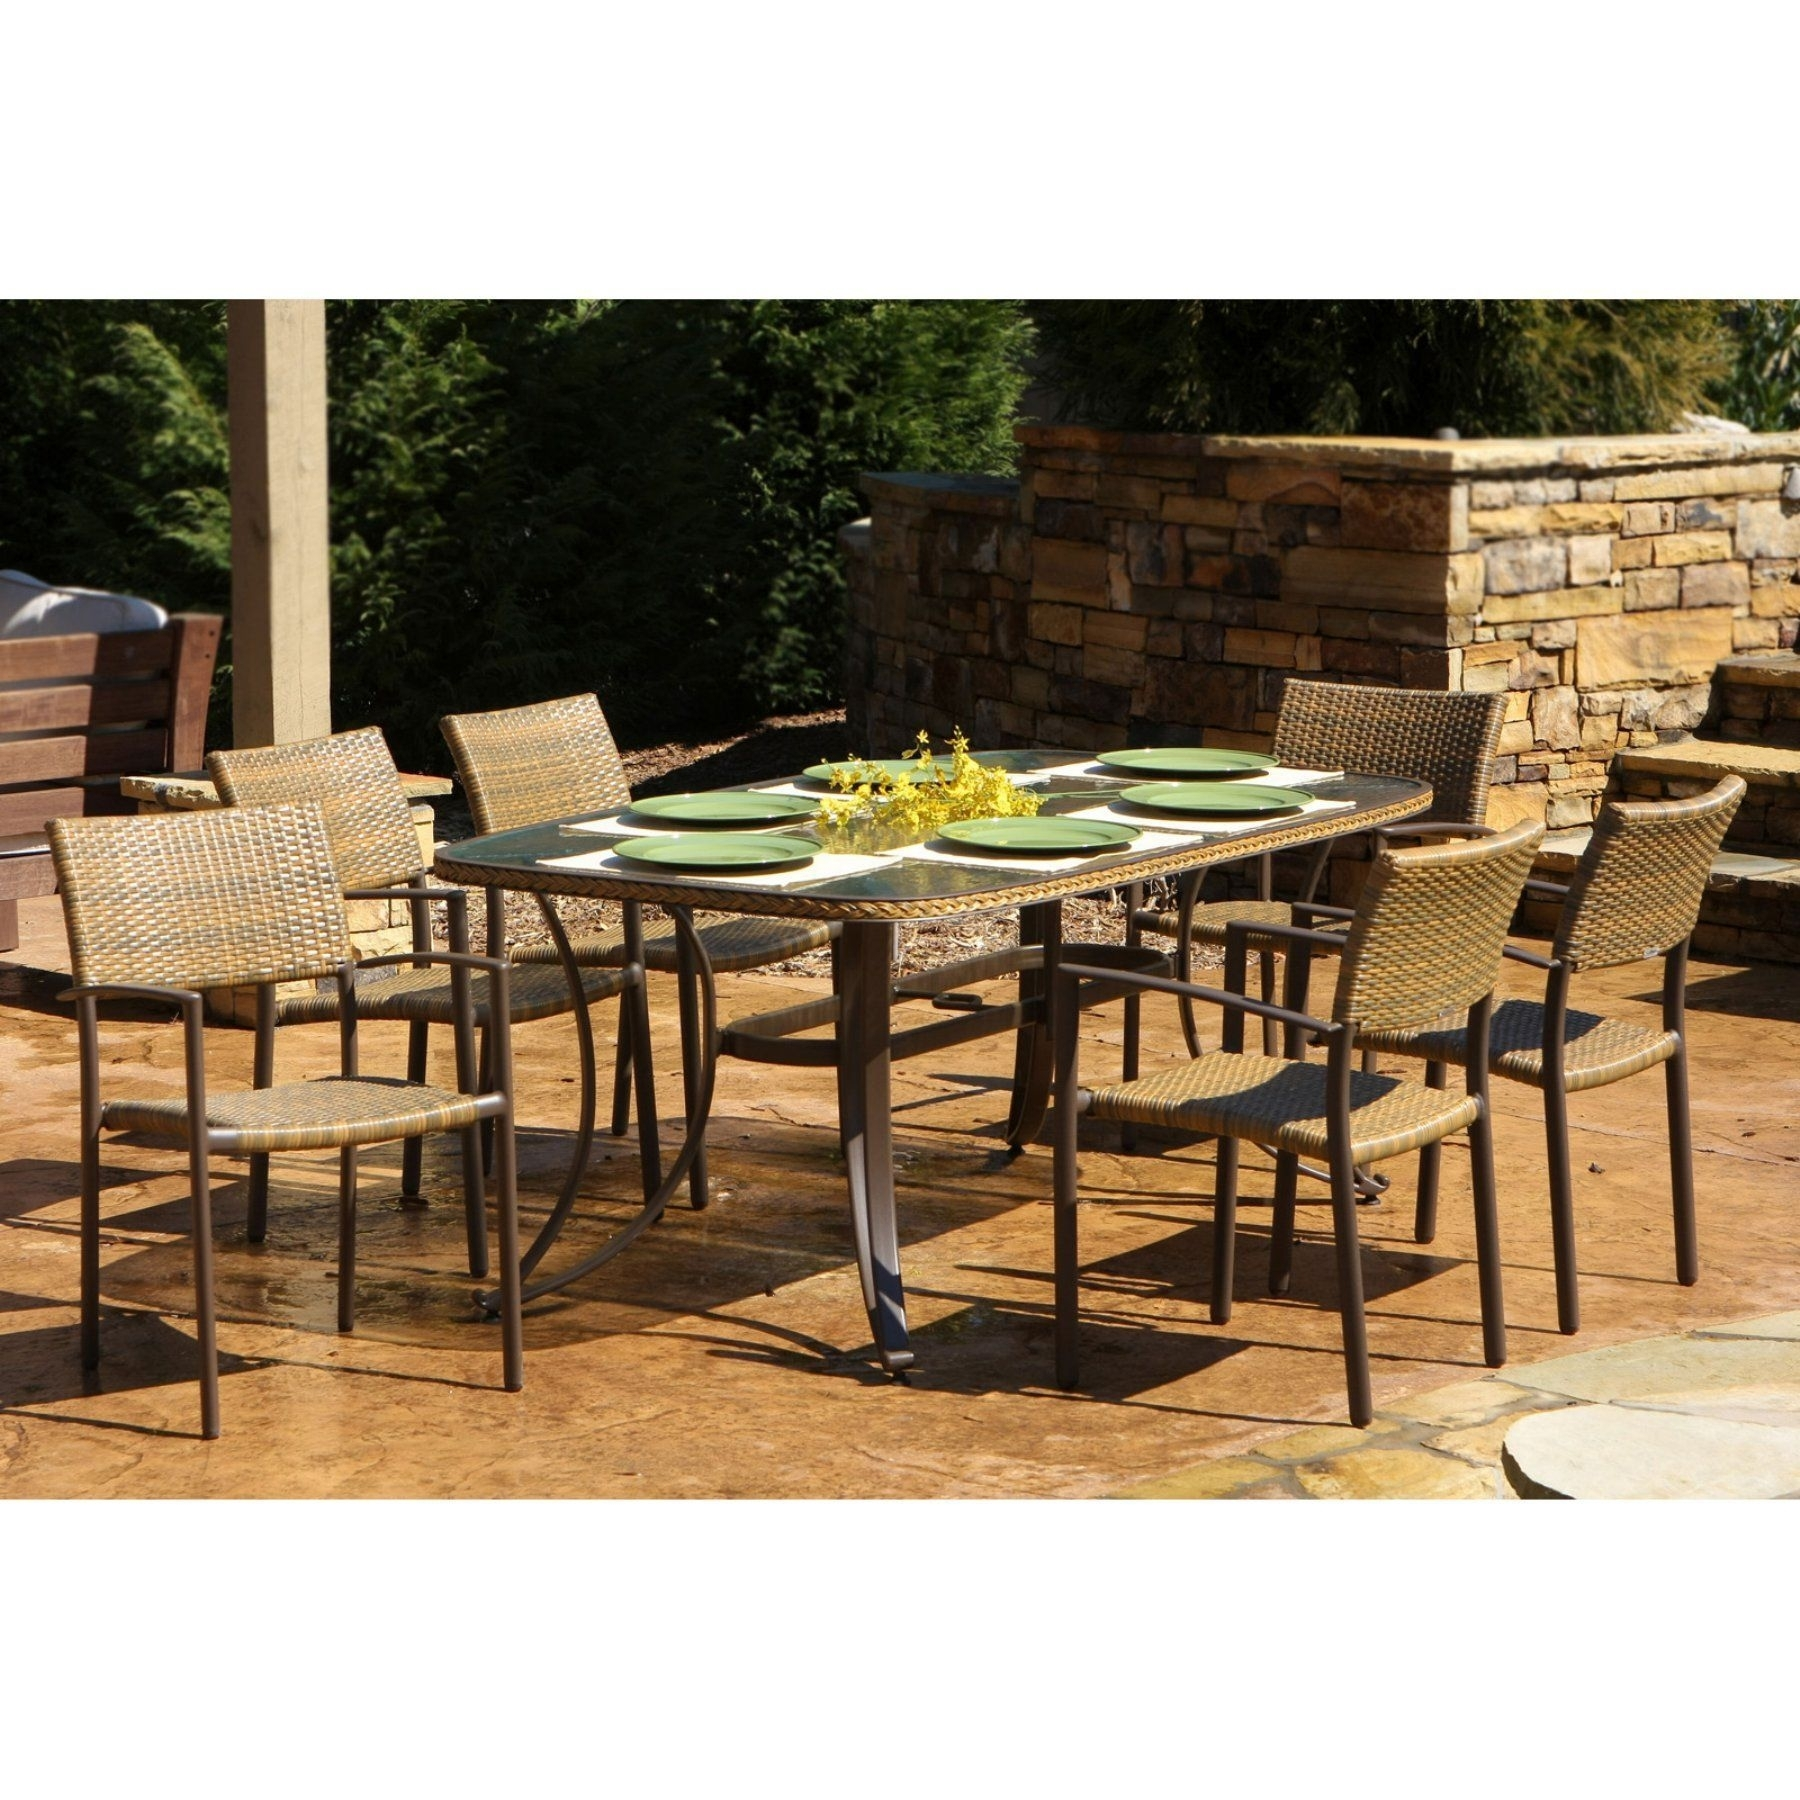 Outdoor Tortuga Maracay 7 Piece Patio Dining Set – Mard 007 | Patio Inside Most Recent Outdoor Tortuga Dining Tables (View 12 of 20)